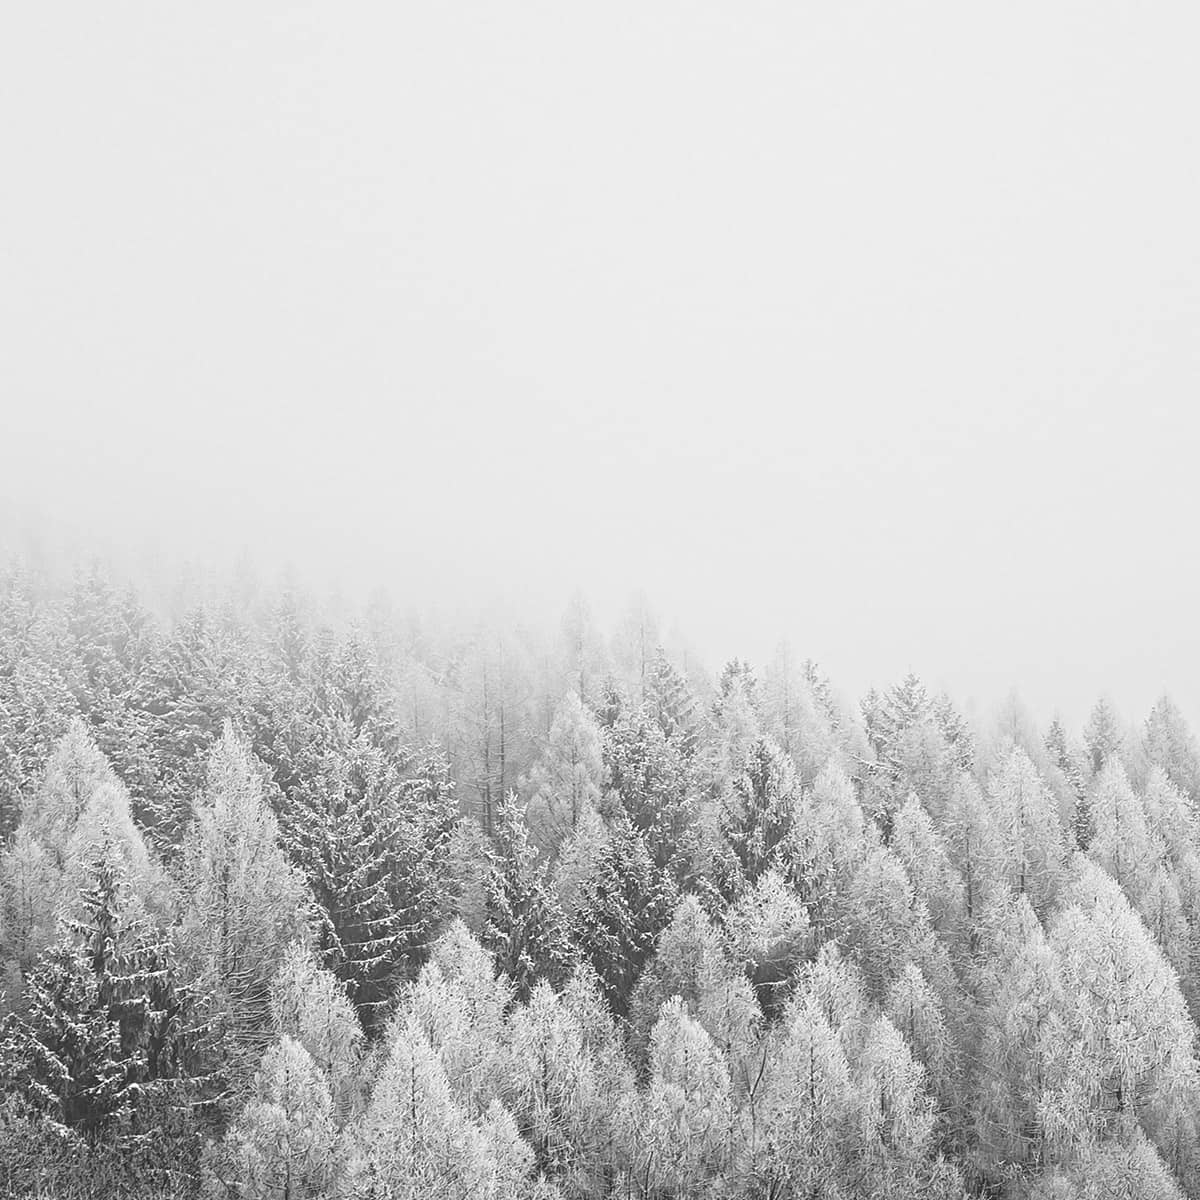 Forest of snowy trees amidst a foggy backdrop creating monotone landscape